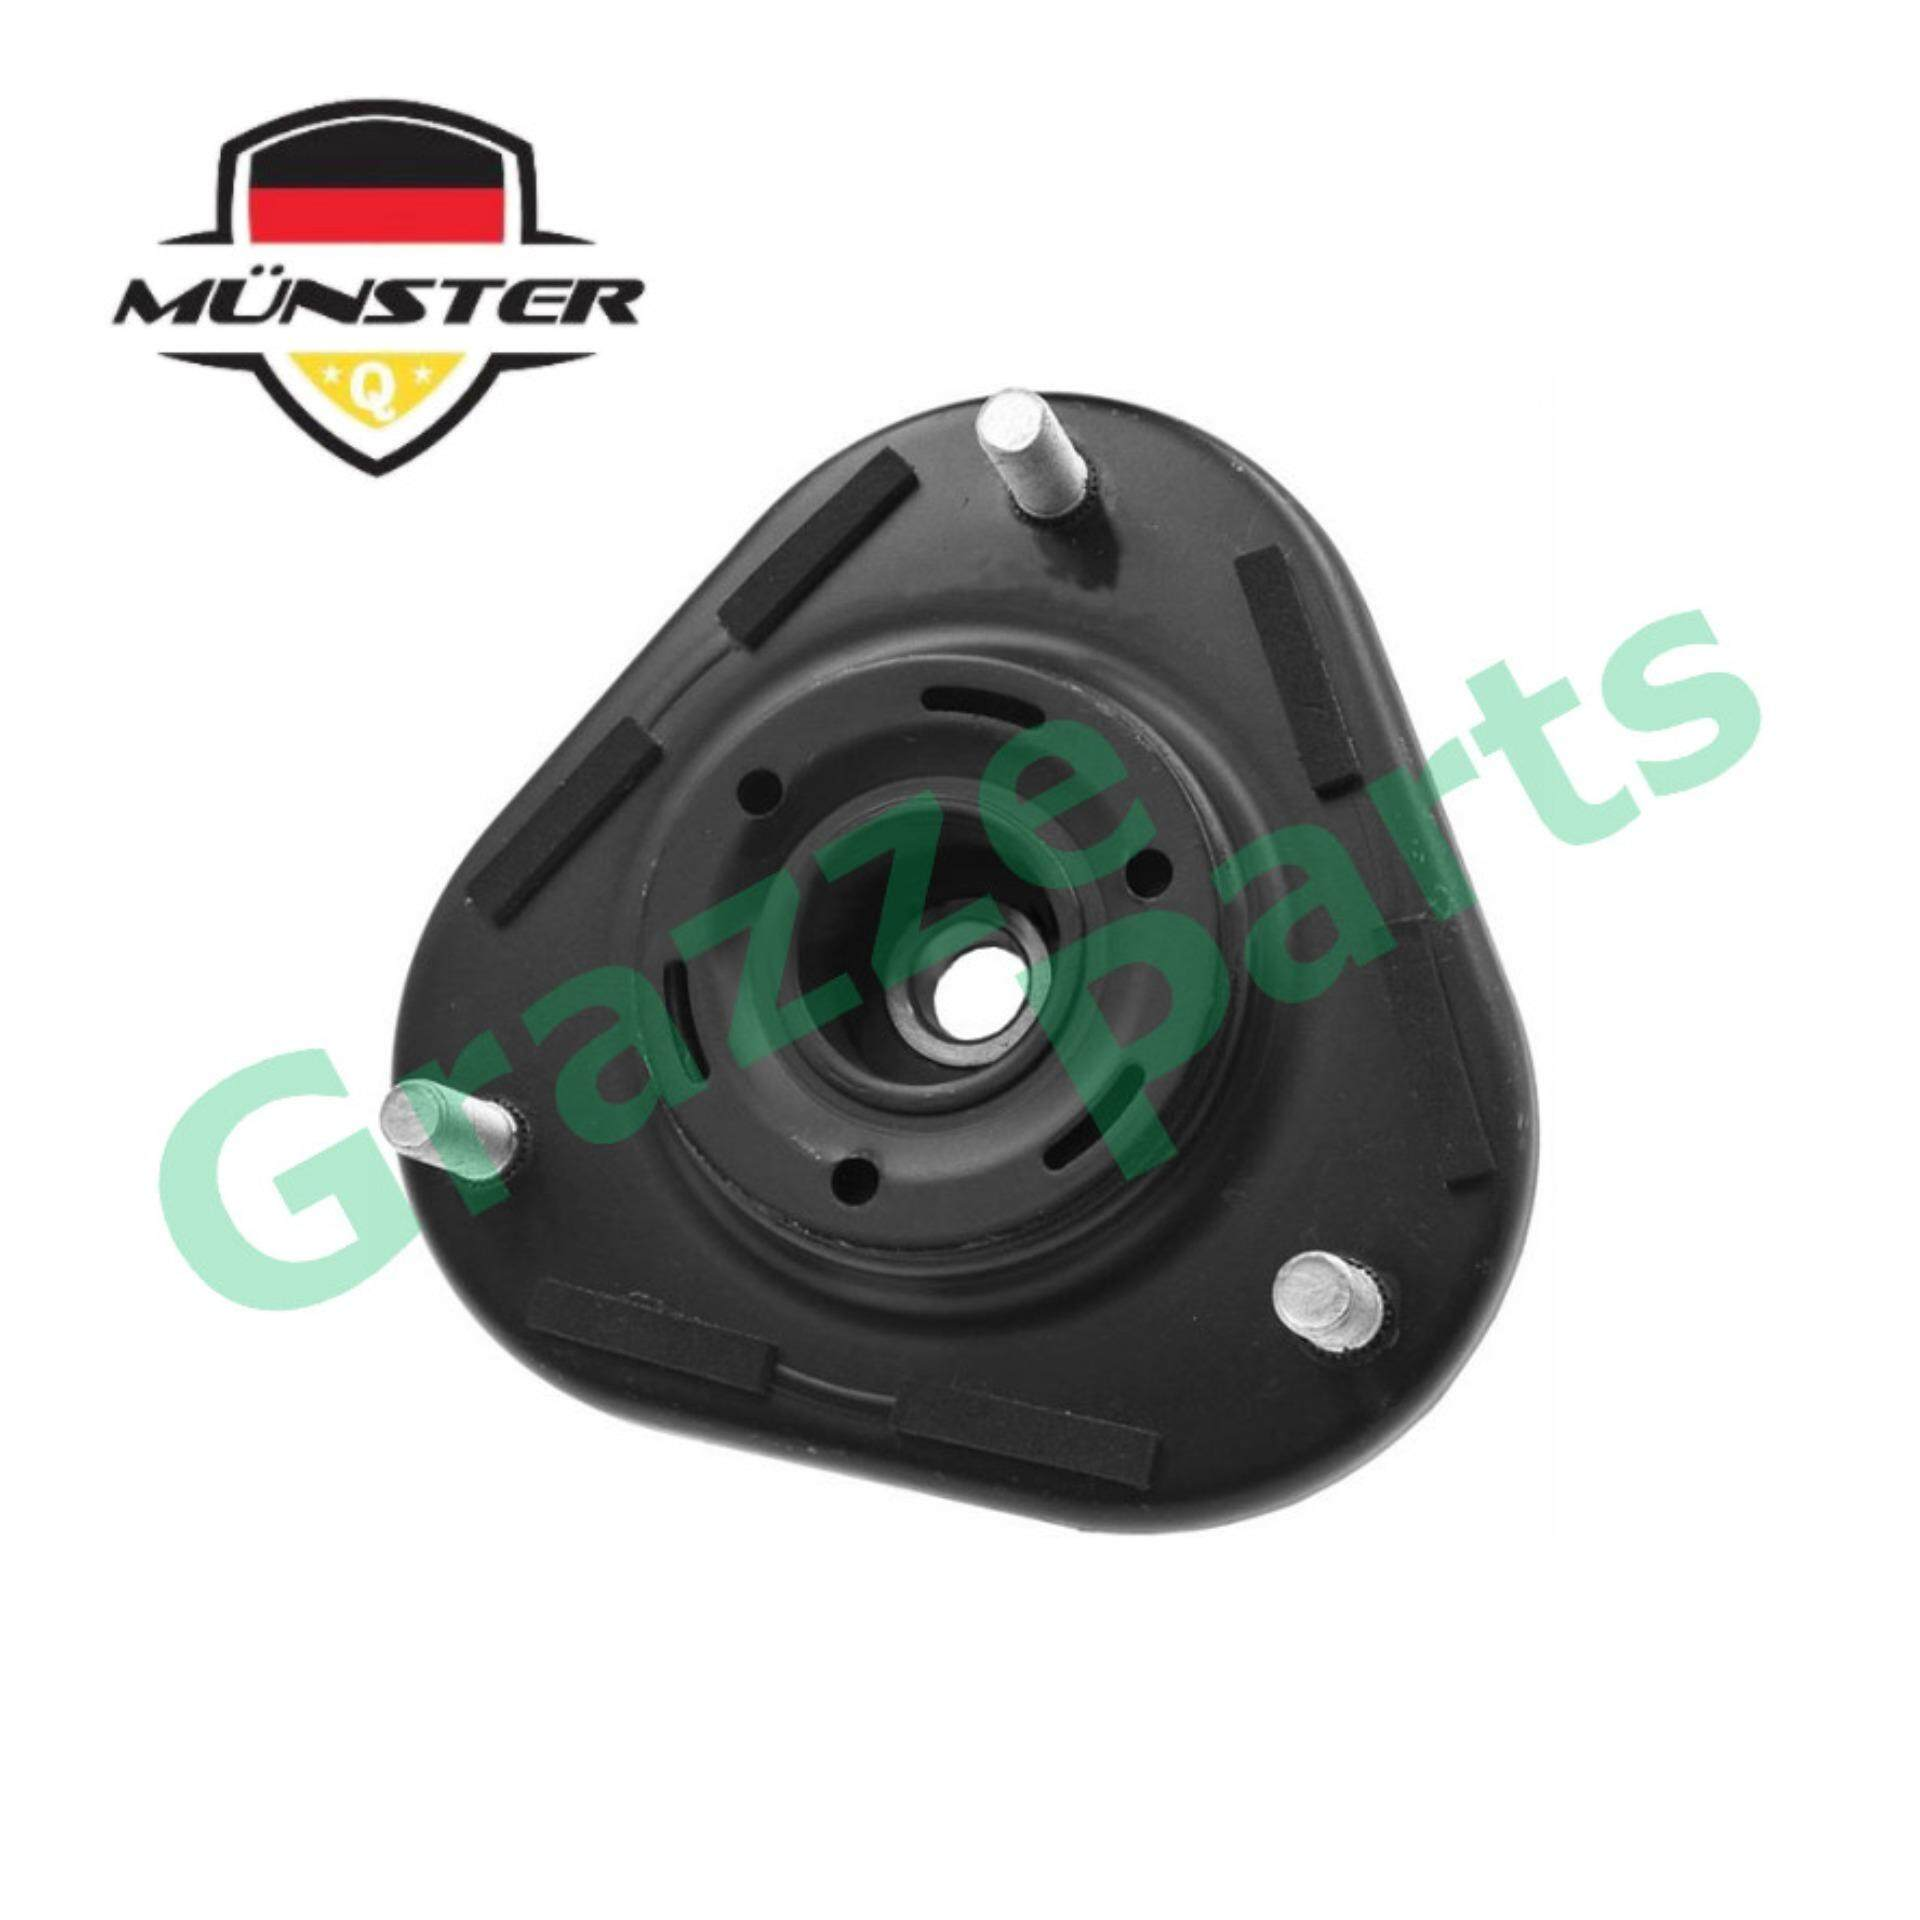 Münster Präzision Technology Absorber Mounting Front RH and LH 48609-21030  for Toyota Caldina ZZT241W AZT246W